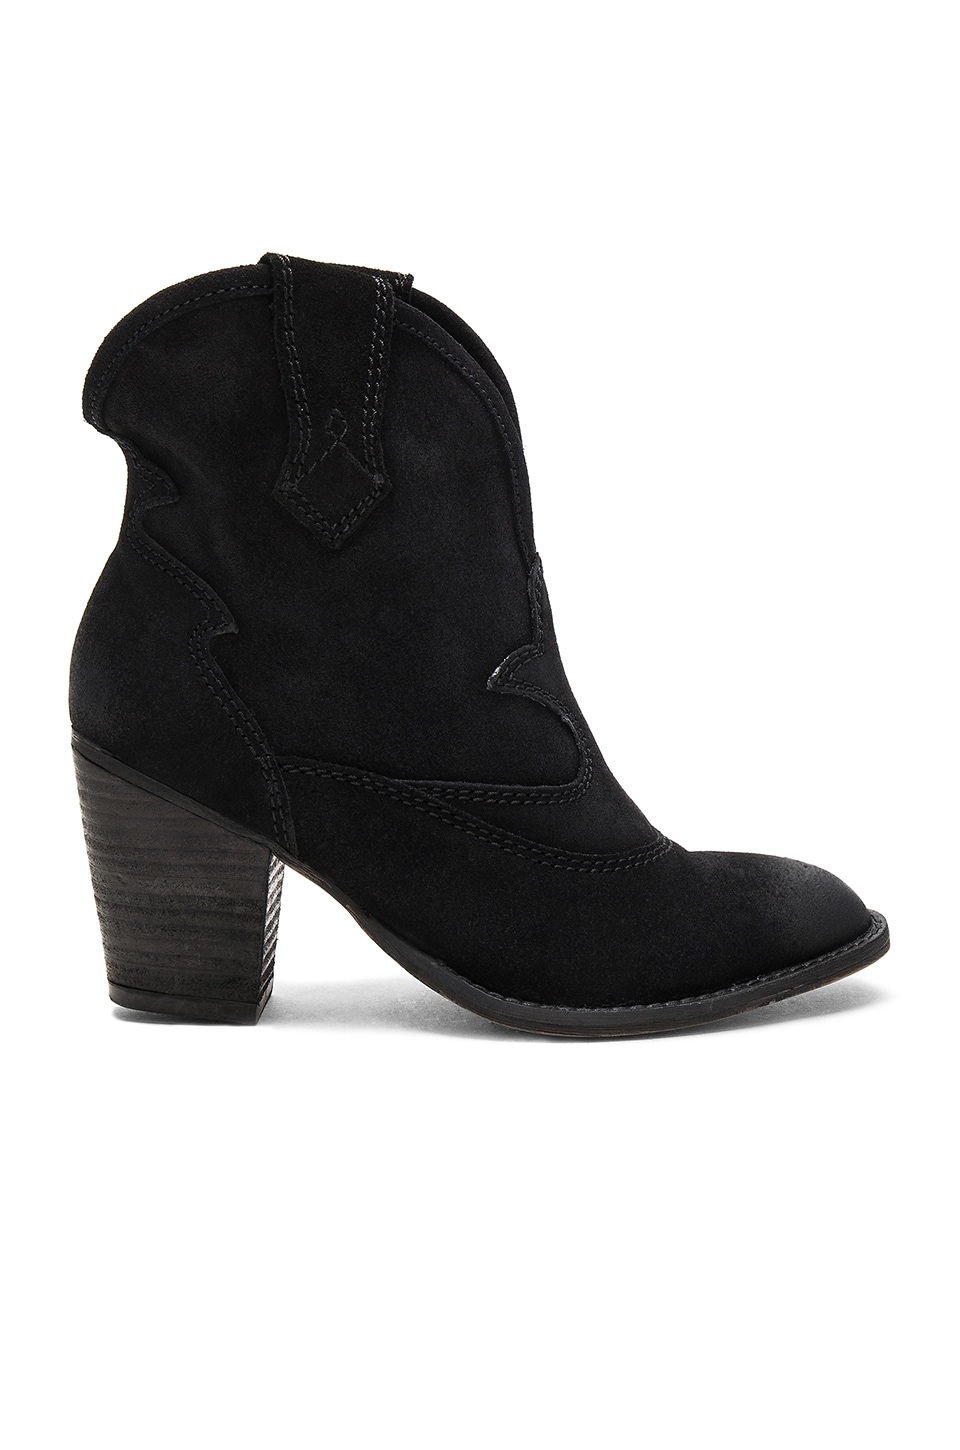 Upland Booties by Jeffrey Campbell